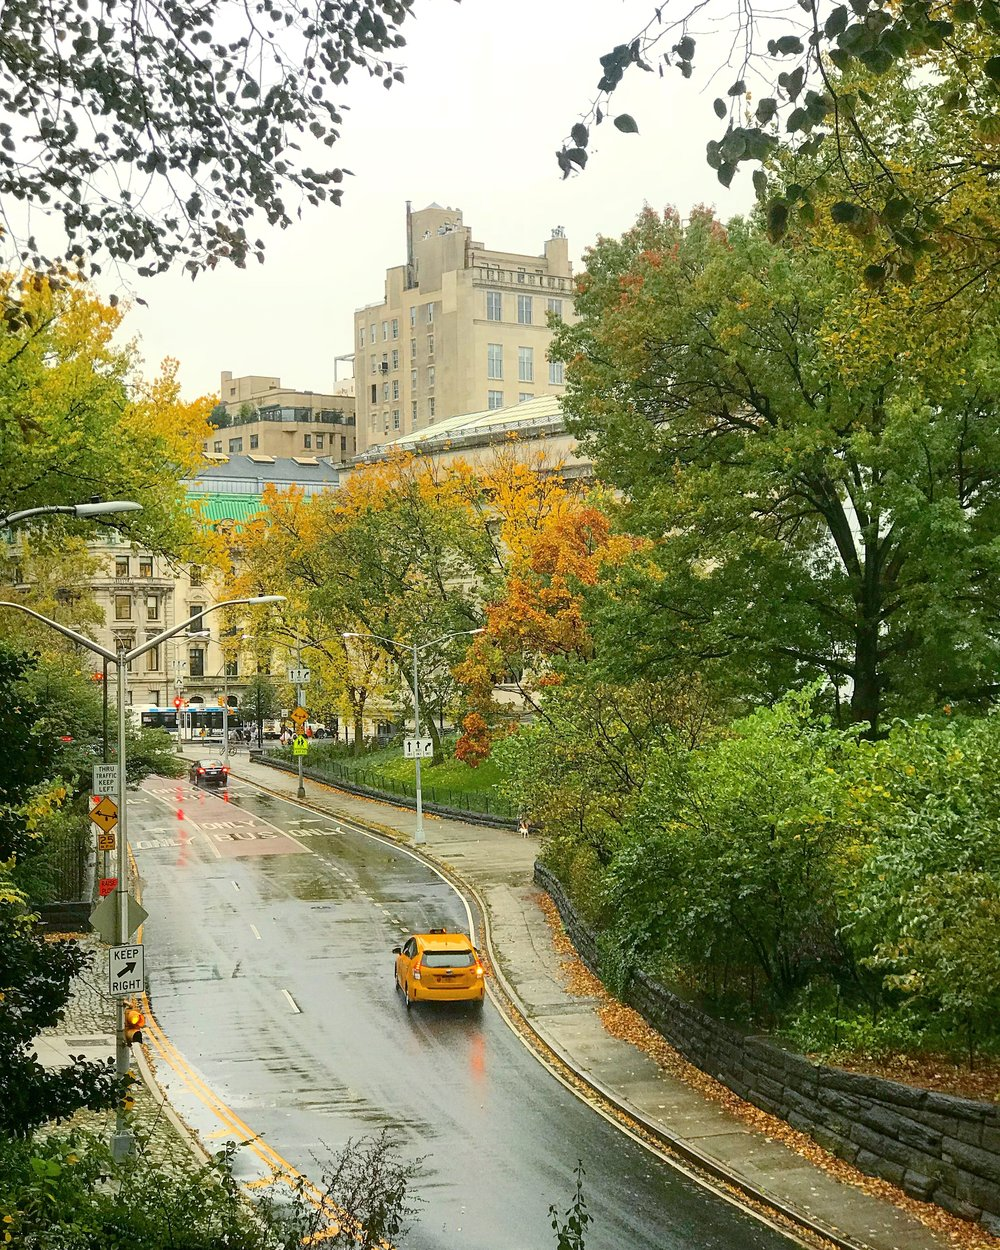 Central Park, 85th Street Transverse, The MET Museum - October, 24th 2017.